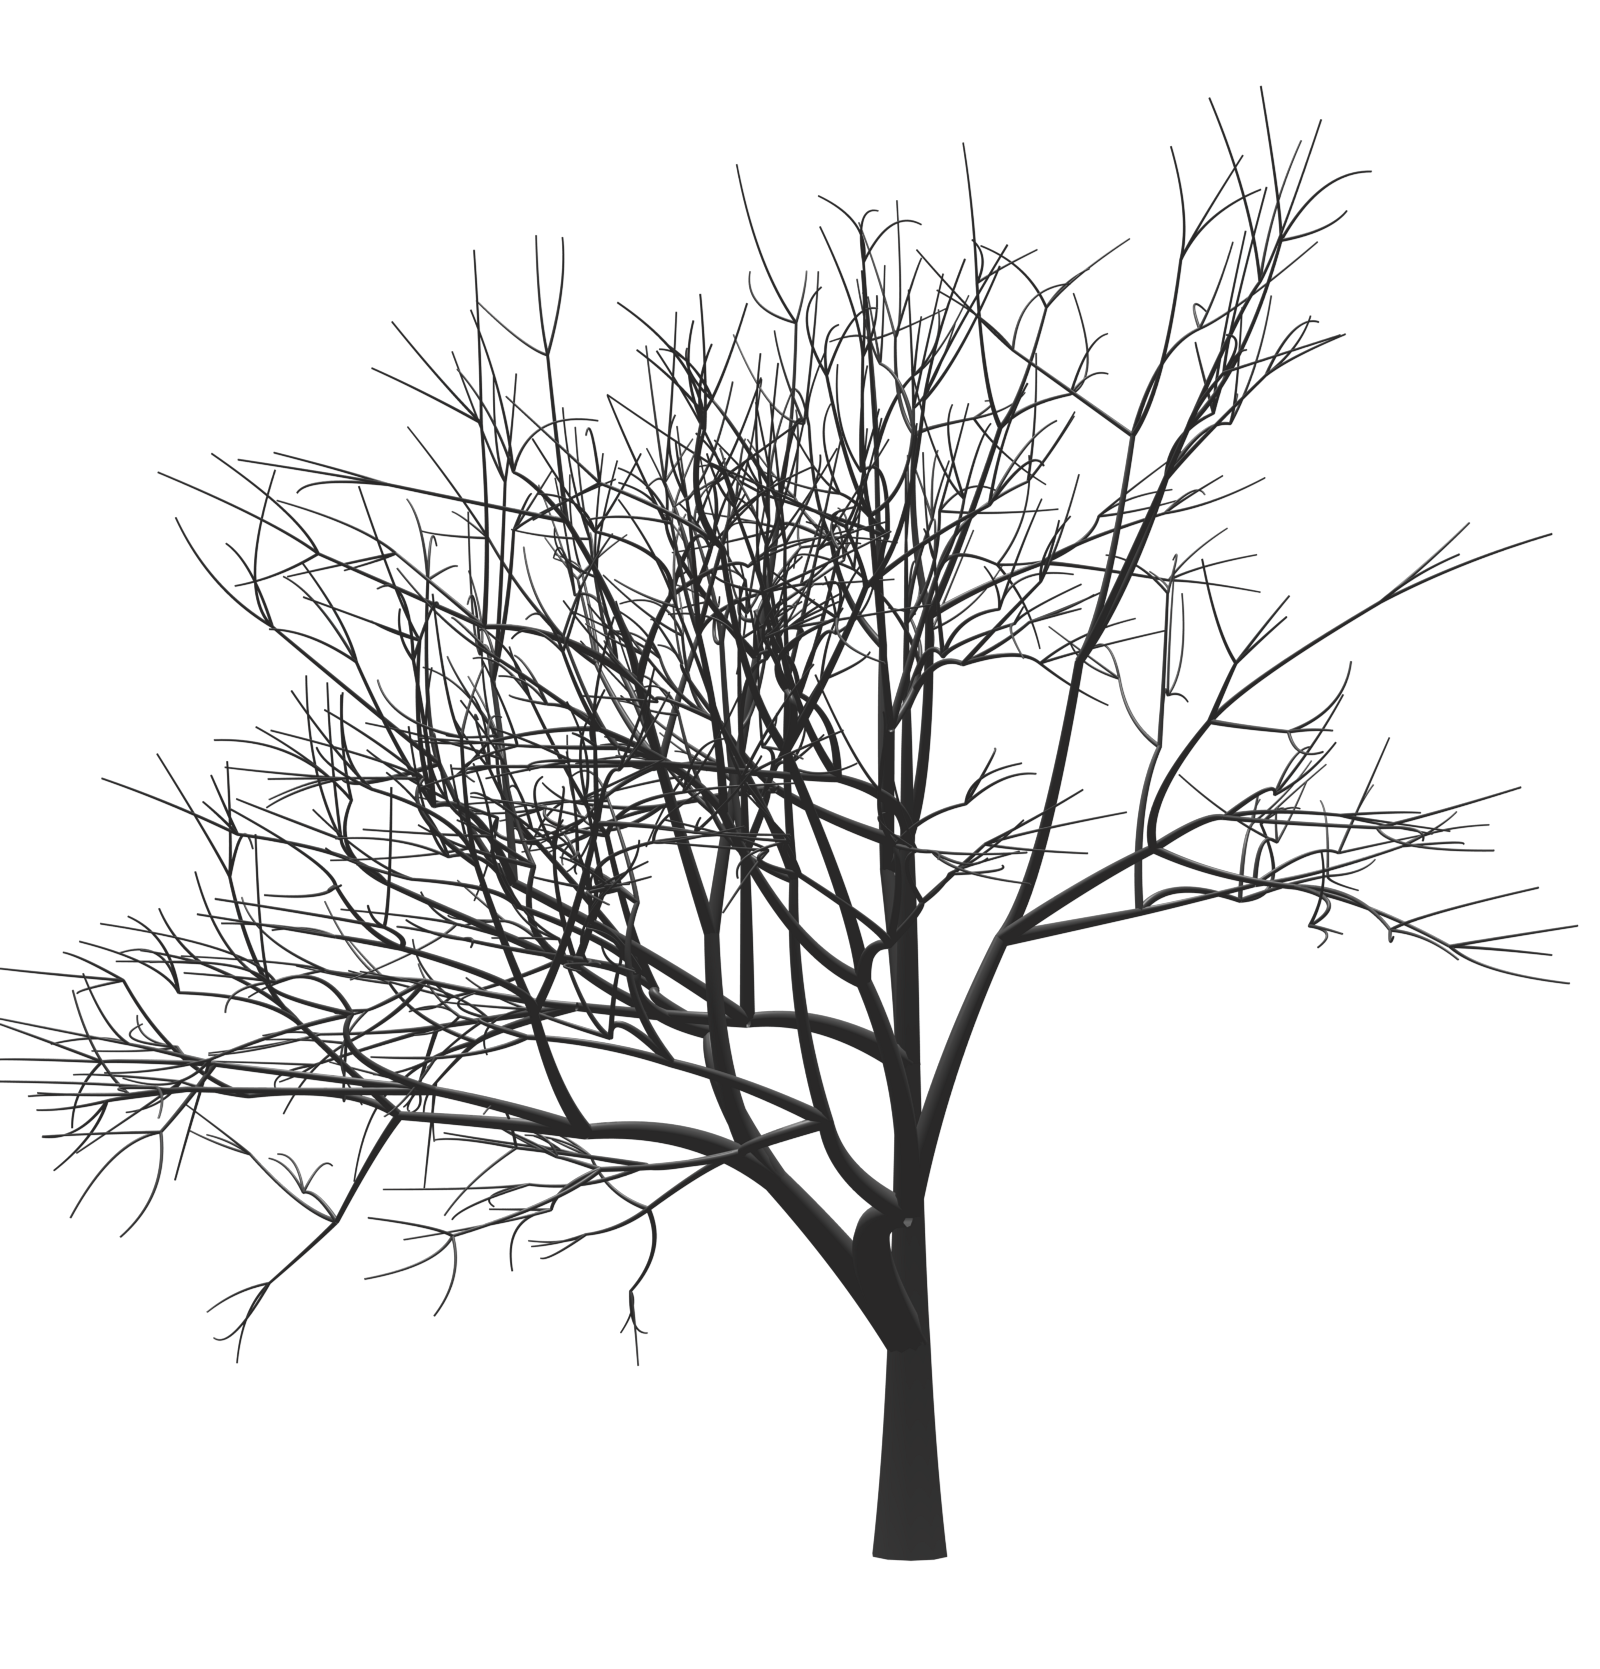 Plant Tree Mark Zuckerberg Monochrome Woody Twig PNG Image